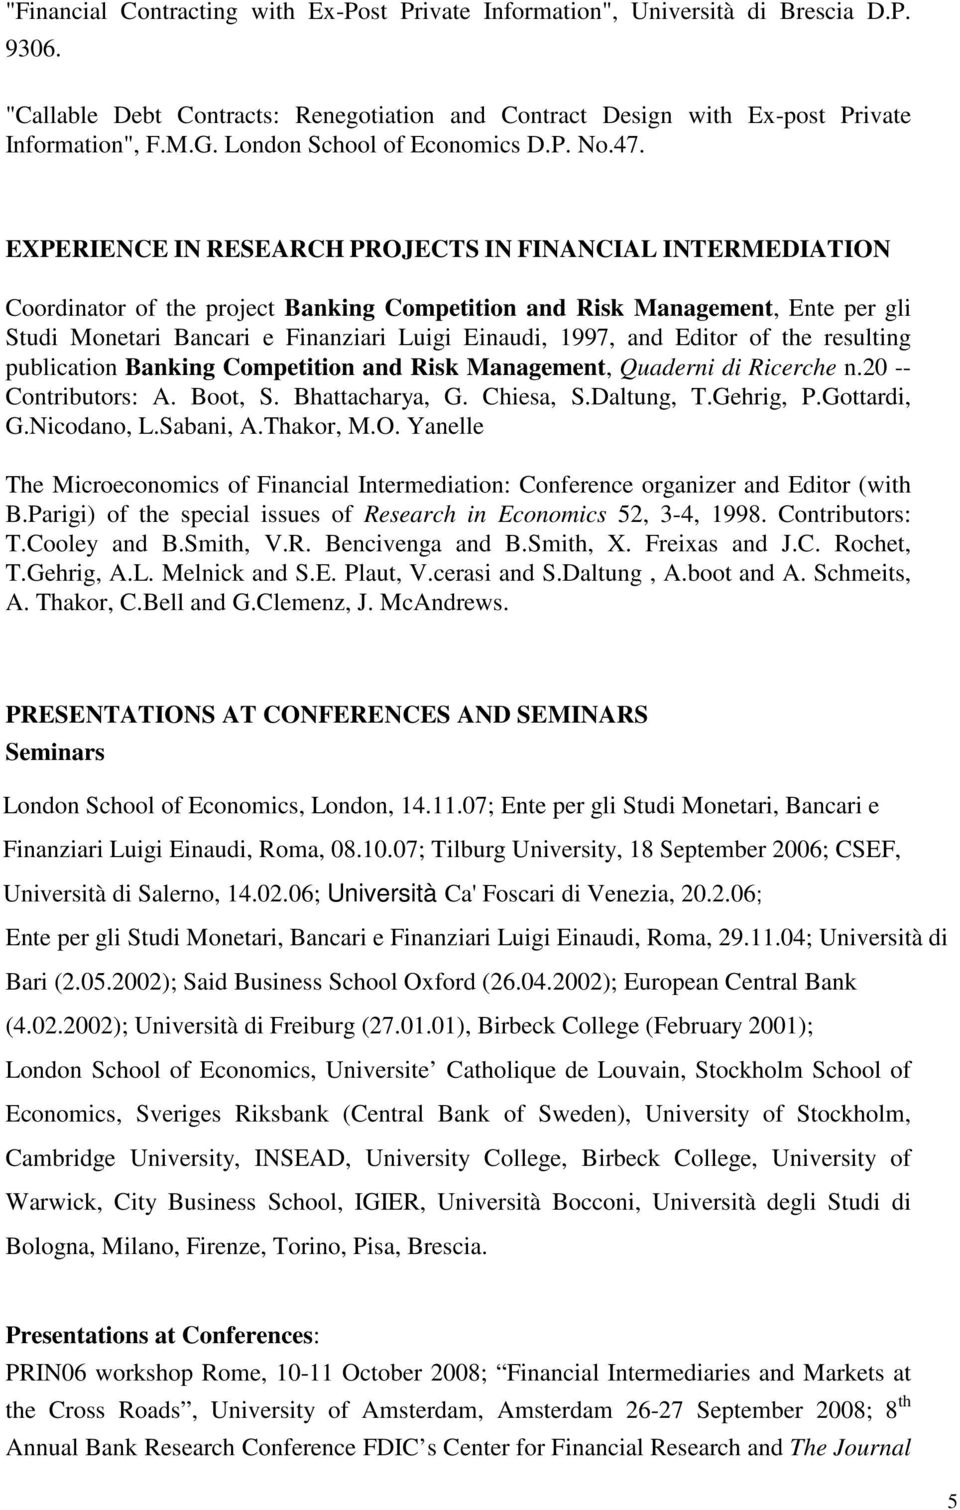 EXPERIENCE IN RESEARCH PROJECTS IN FINANCIAL INTERMEDIATION Coordinator of the project Banking Competition and Risk Management, Ente per gli Studi Monetari Bancari e Finanziari Luigi Einaudi, 1997,